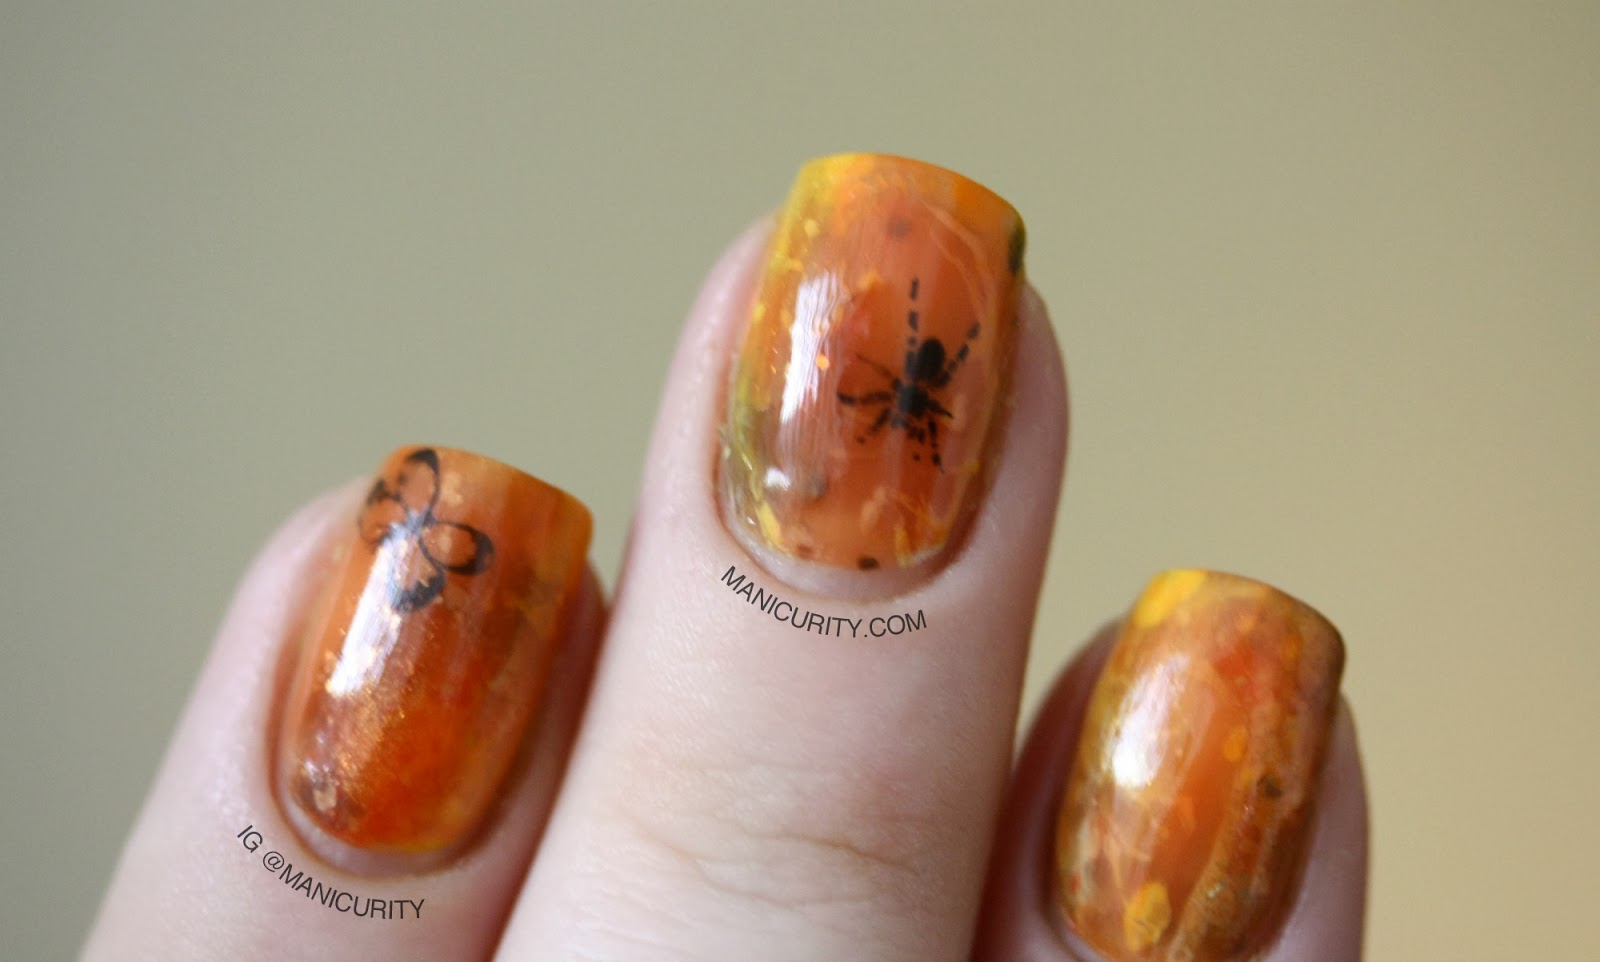 Manicurity: Amber Resin Nail Art